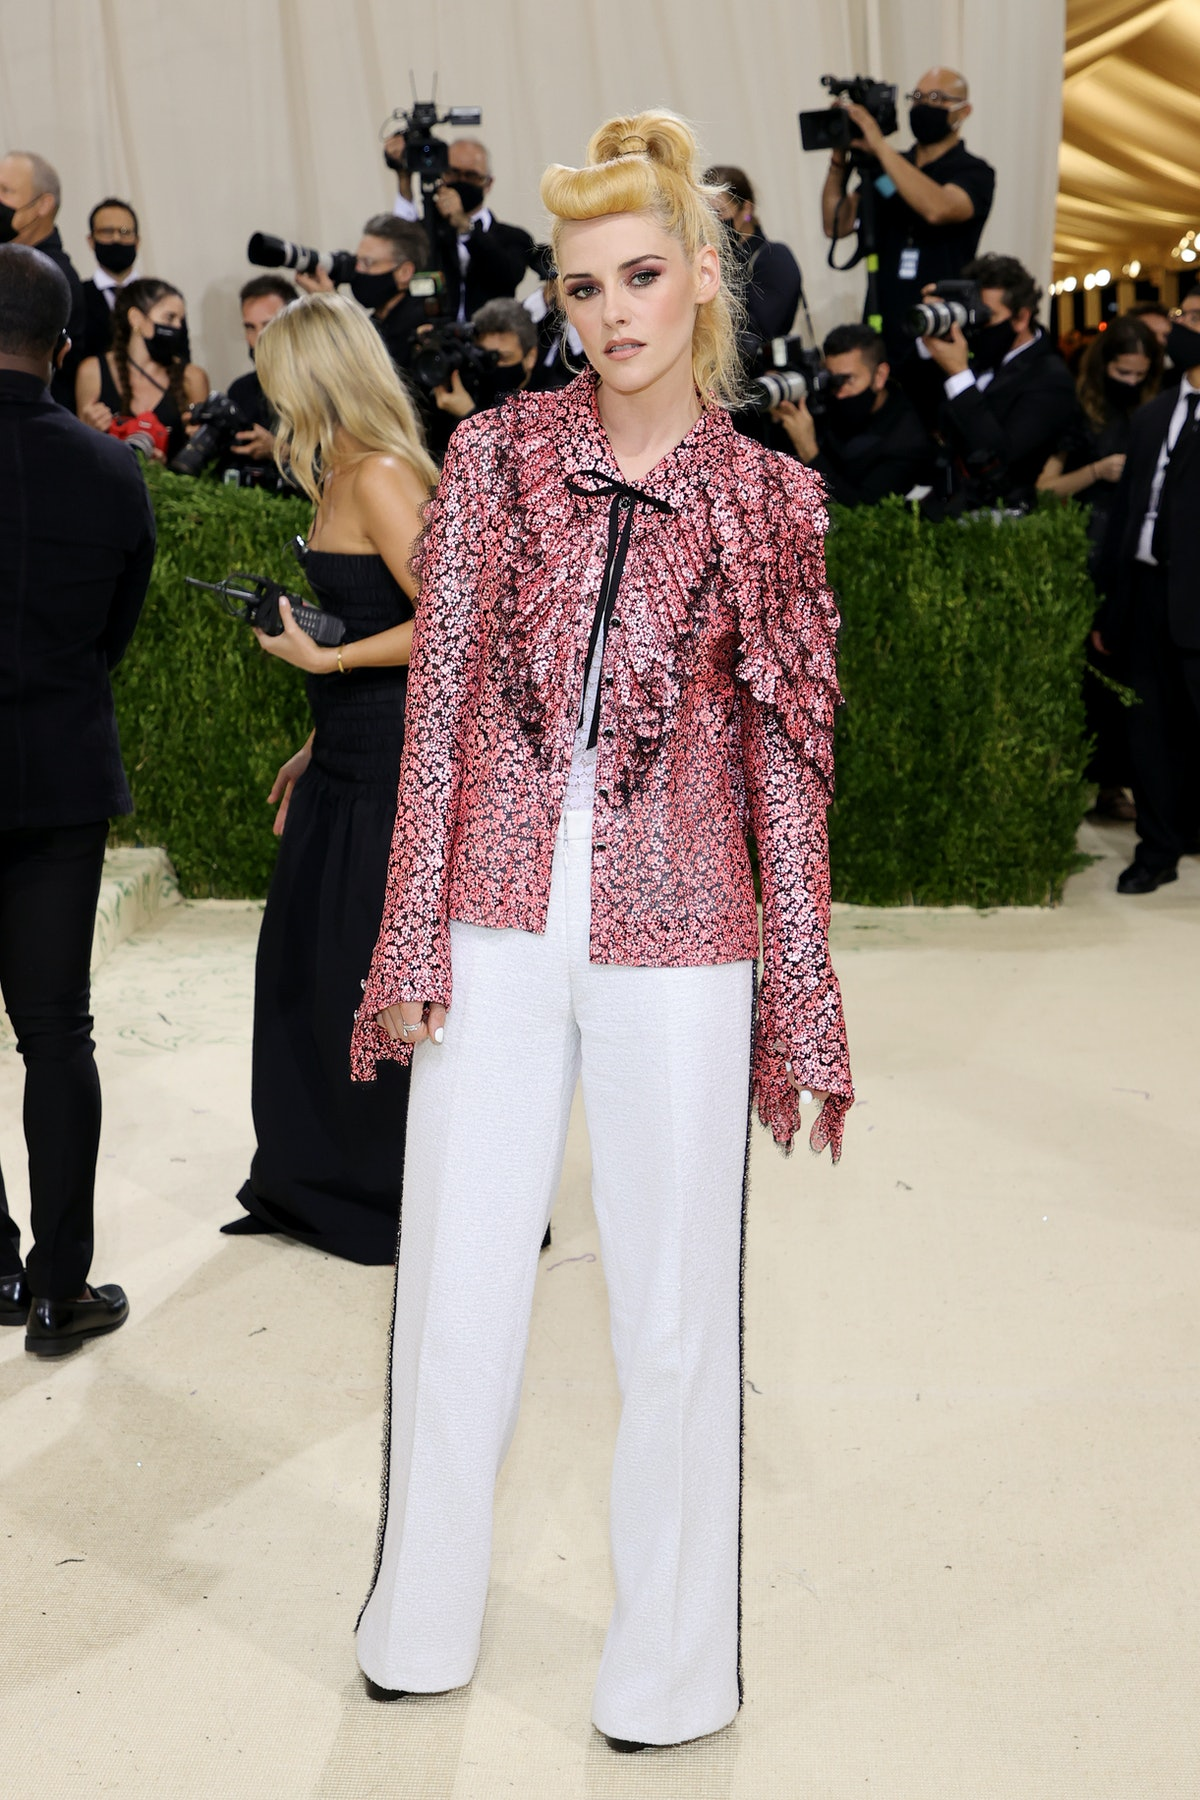 Kristen Stewart attends The 2021 Met Gala Celebrating In America: A Lexicon Of Fashion at Metropolit...